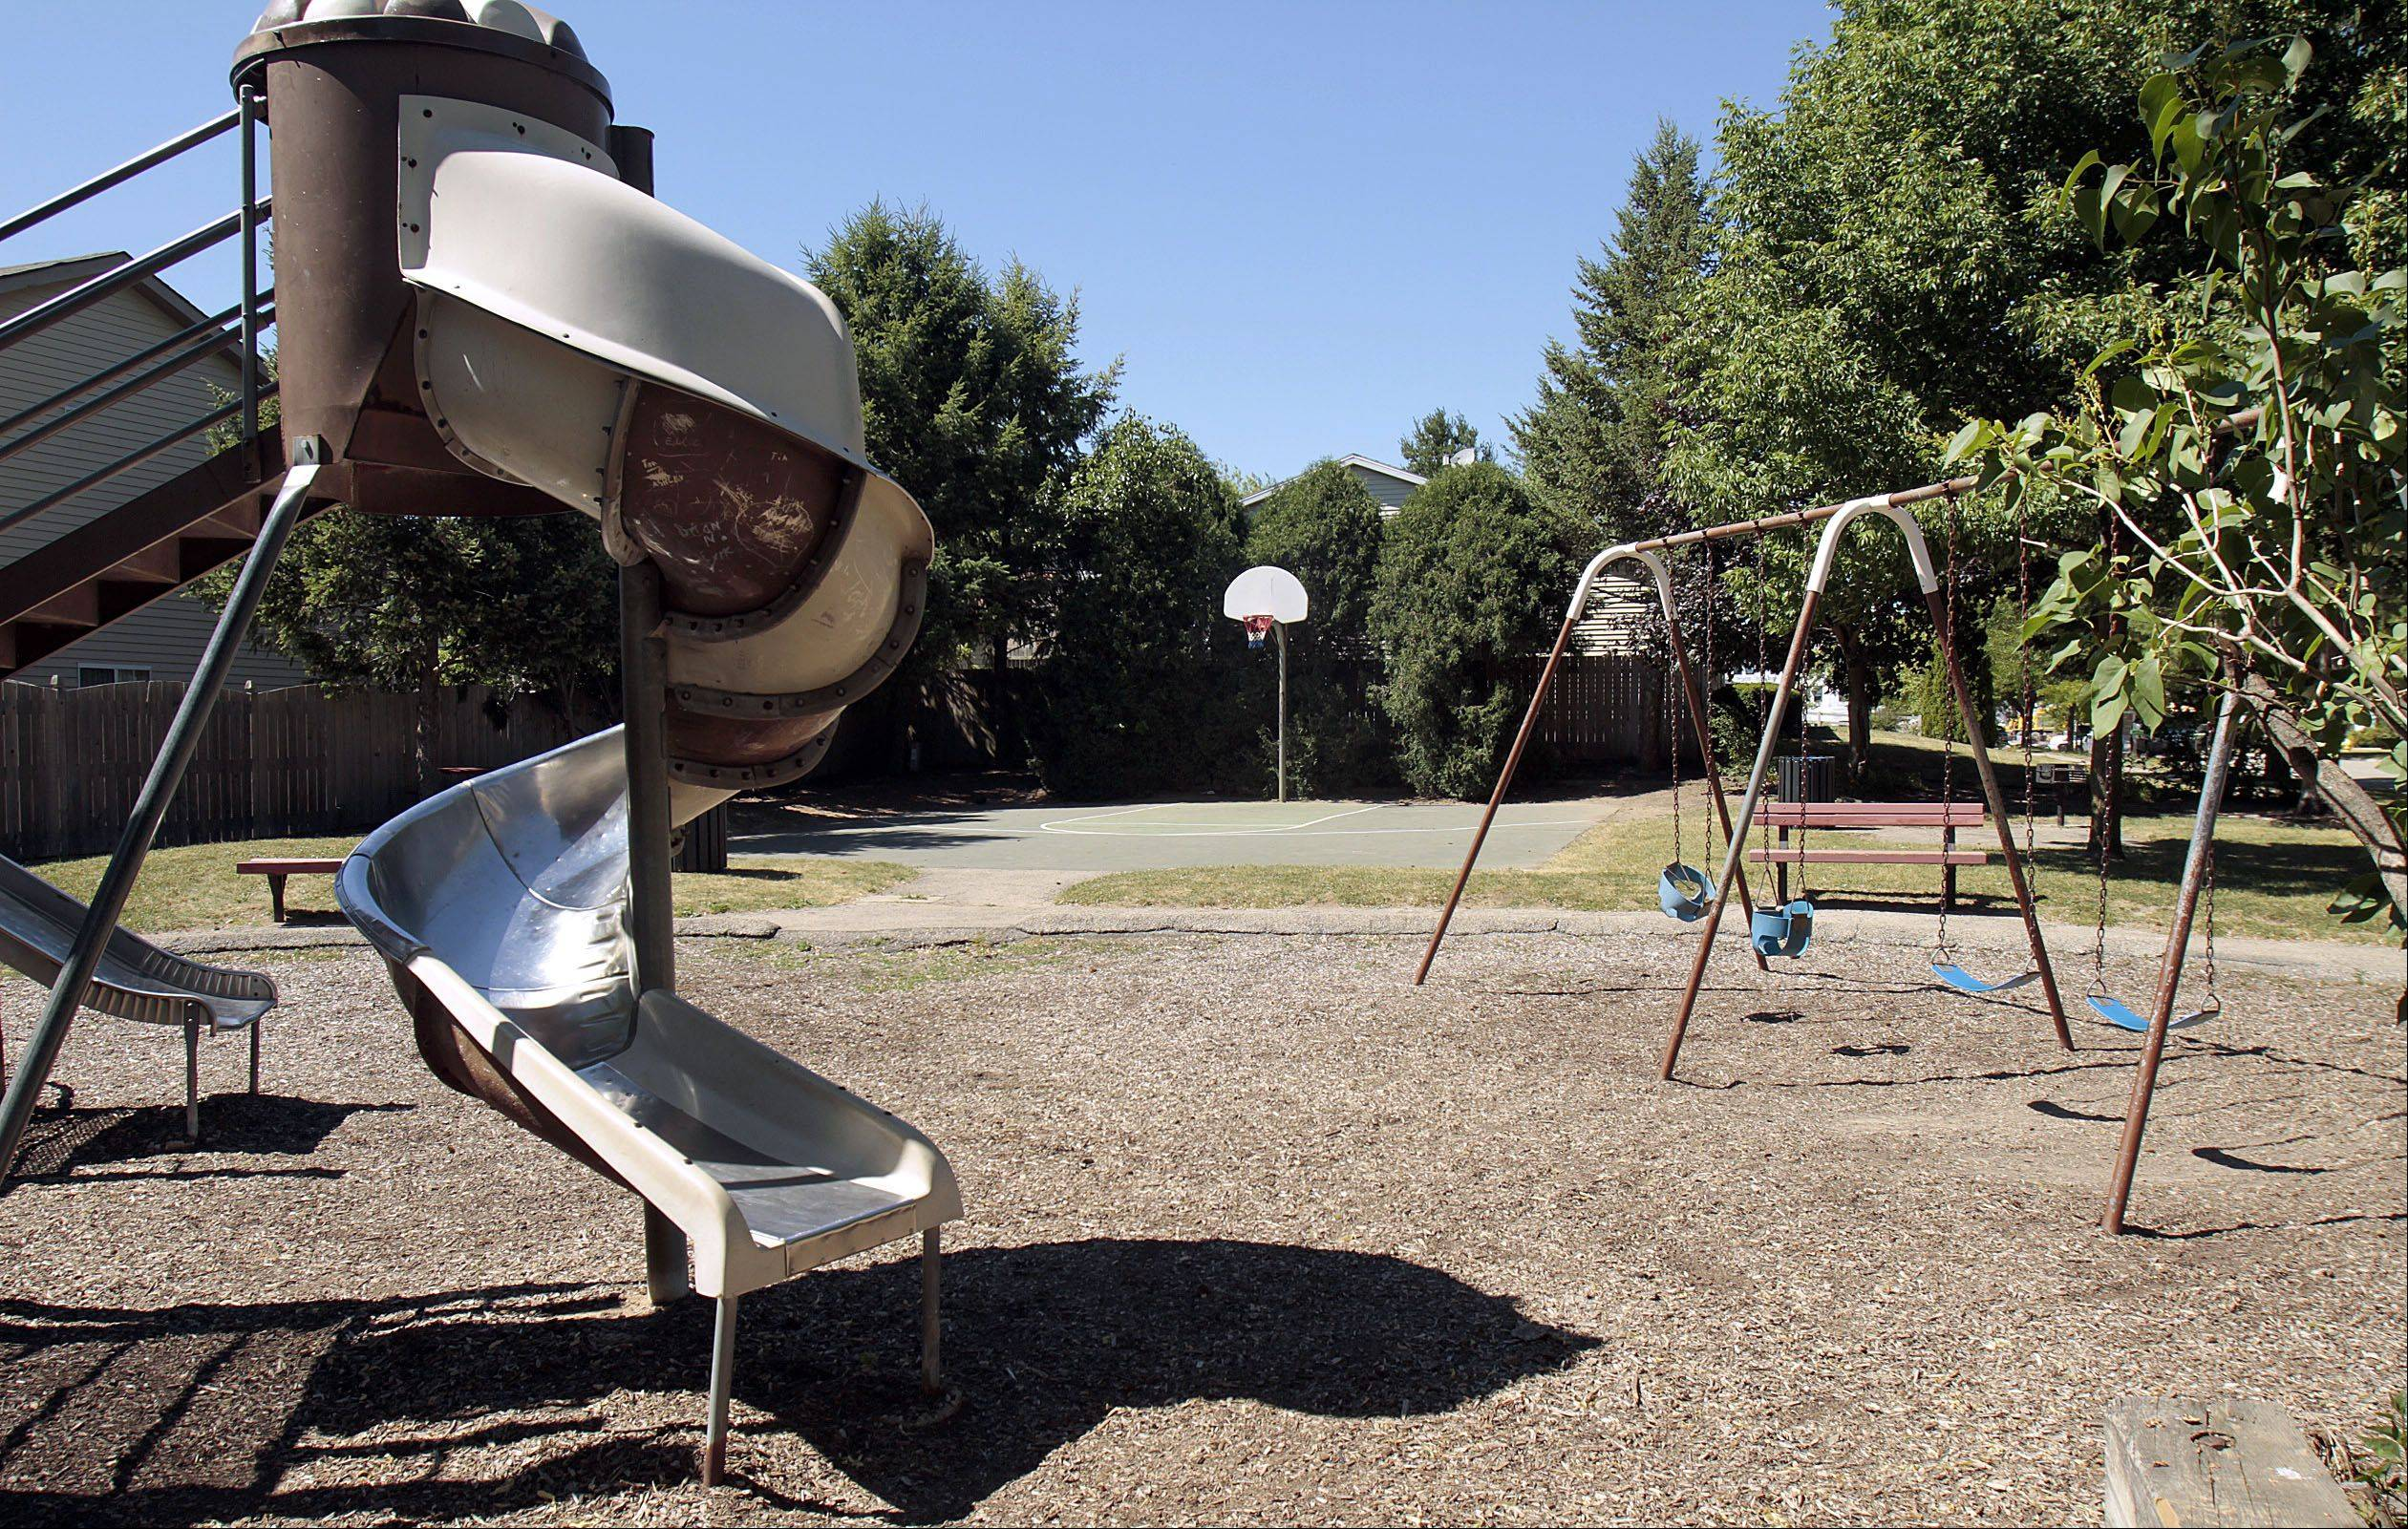 Grayslake Park District will receive a $105,000 grant which will be used to improve Cullen Park with a new playground, picnic shelter and half court basketball court.